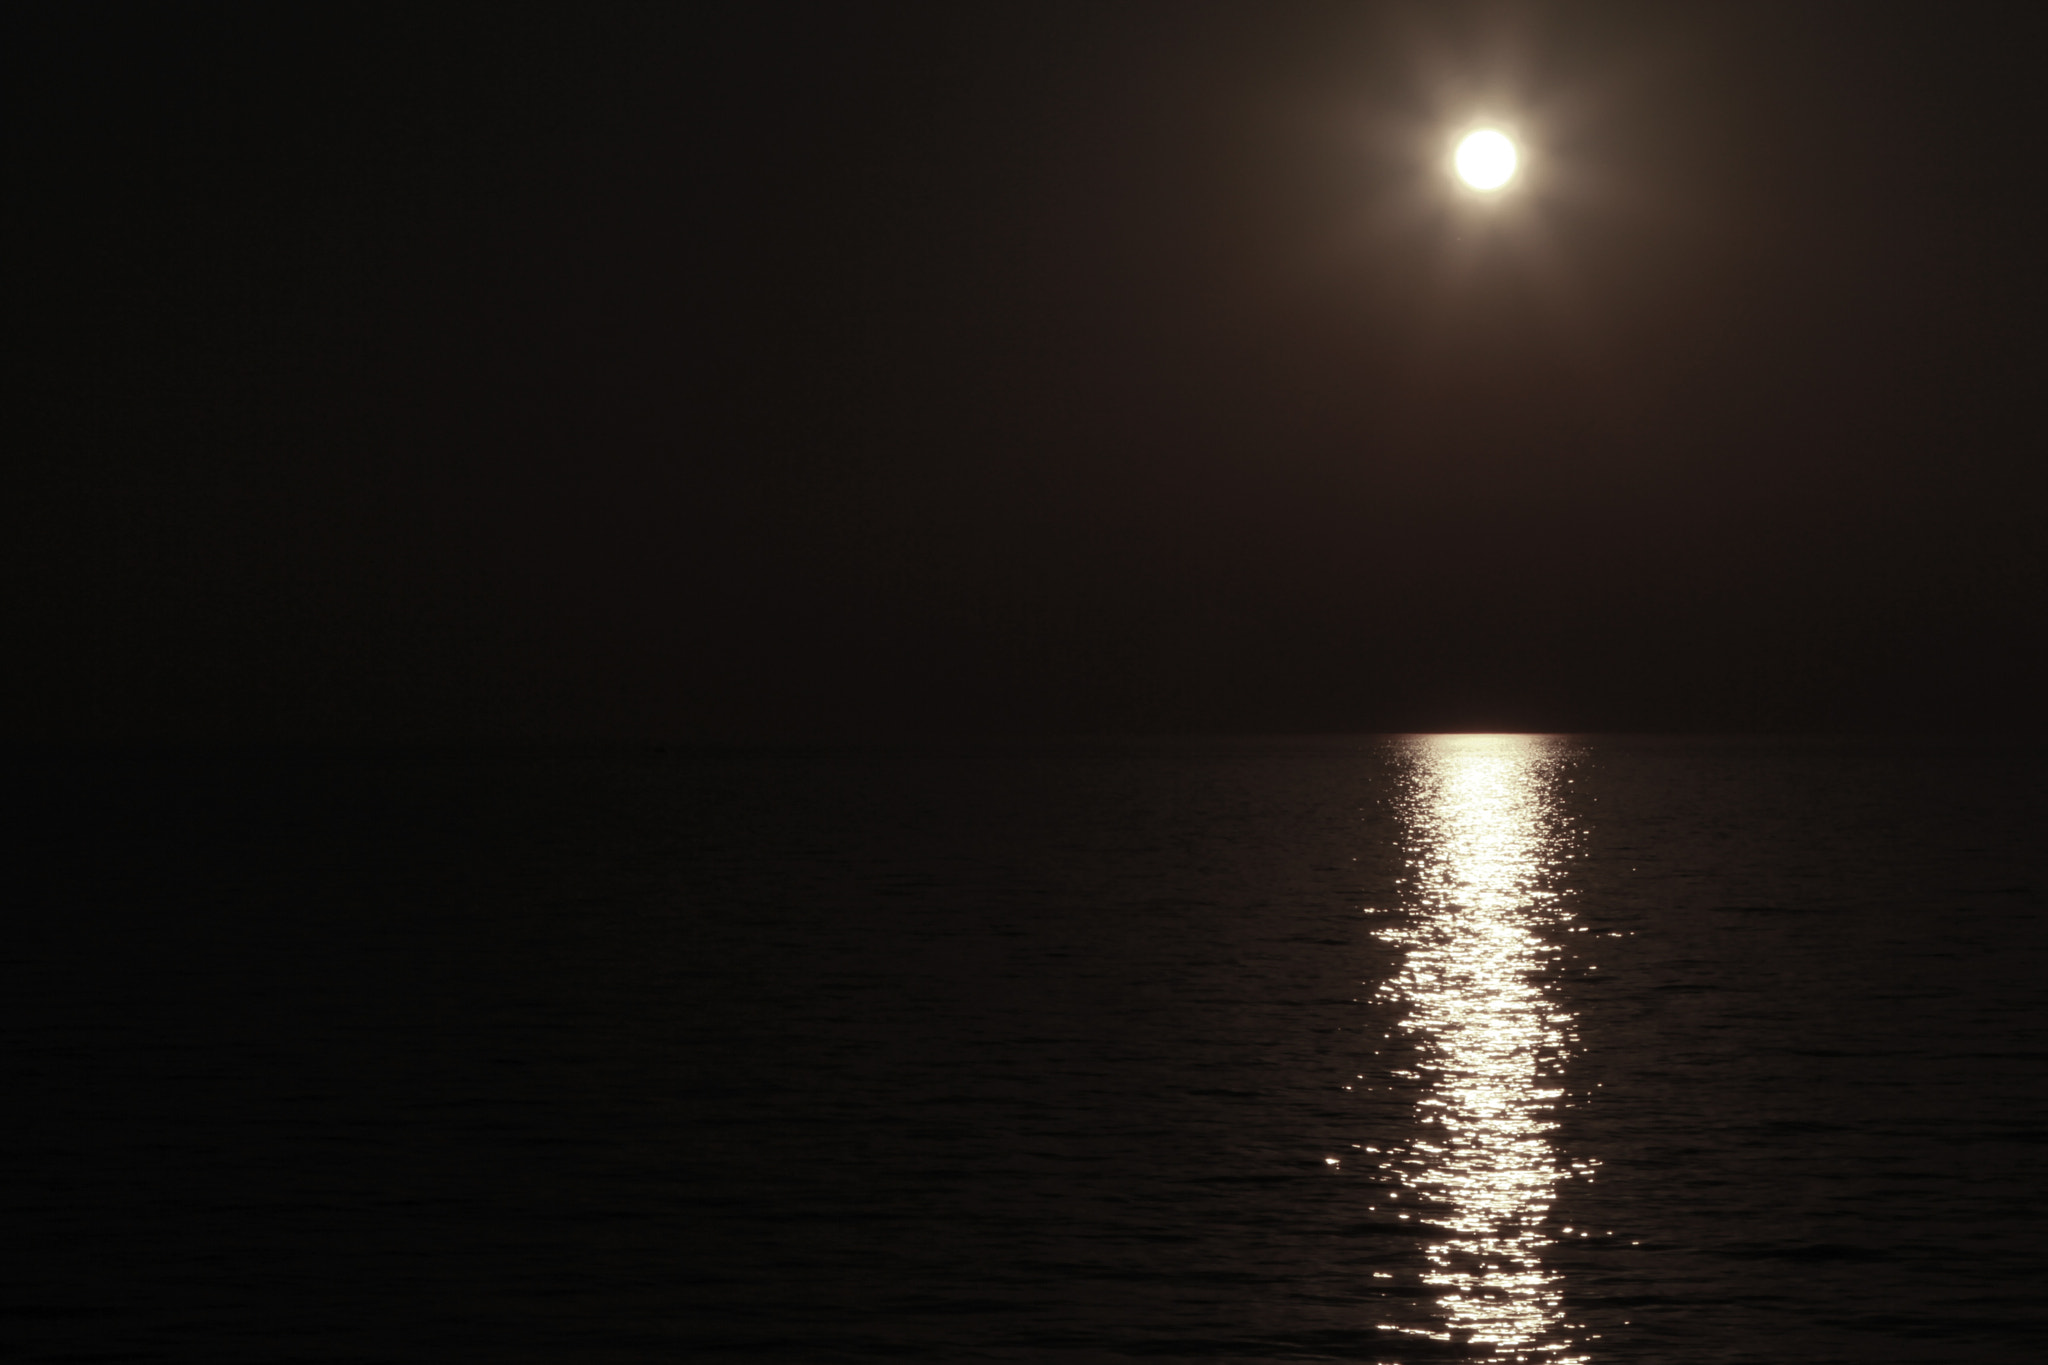 Photograph Moon over Lake Erie by Tom Rogula on 500px